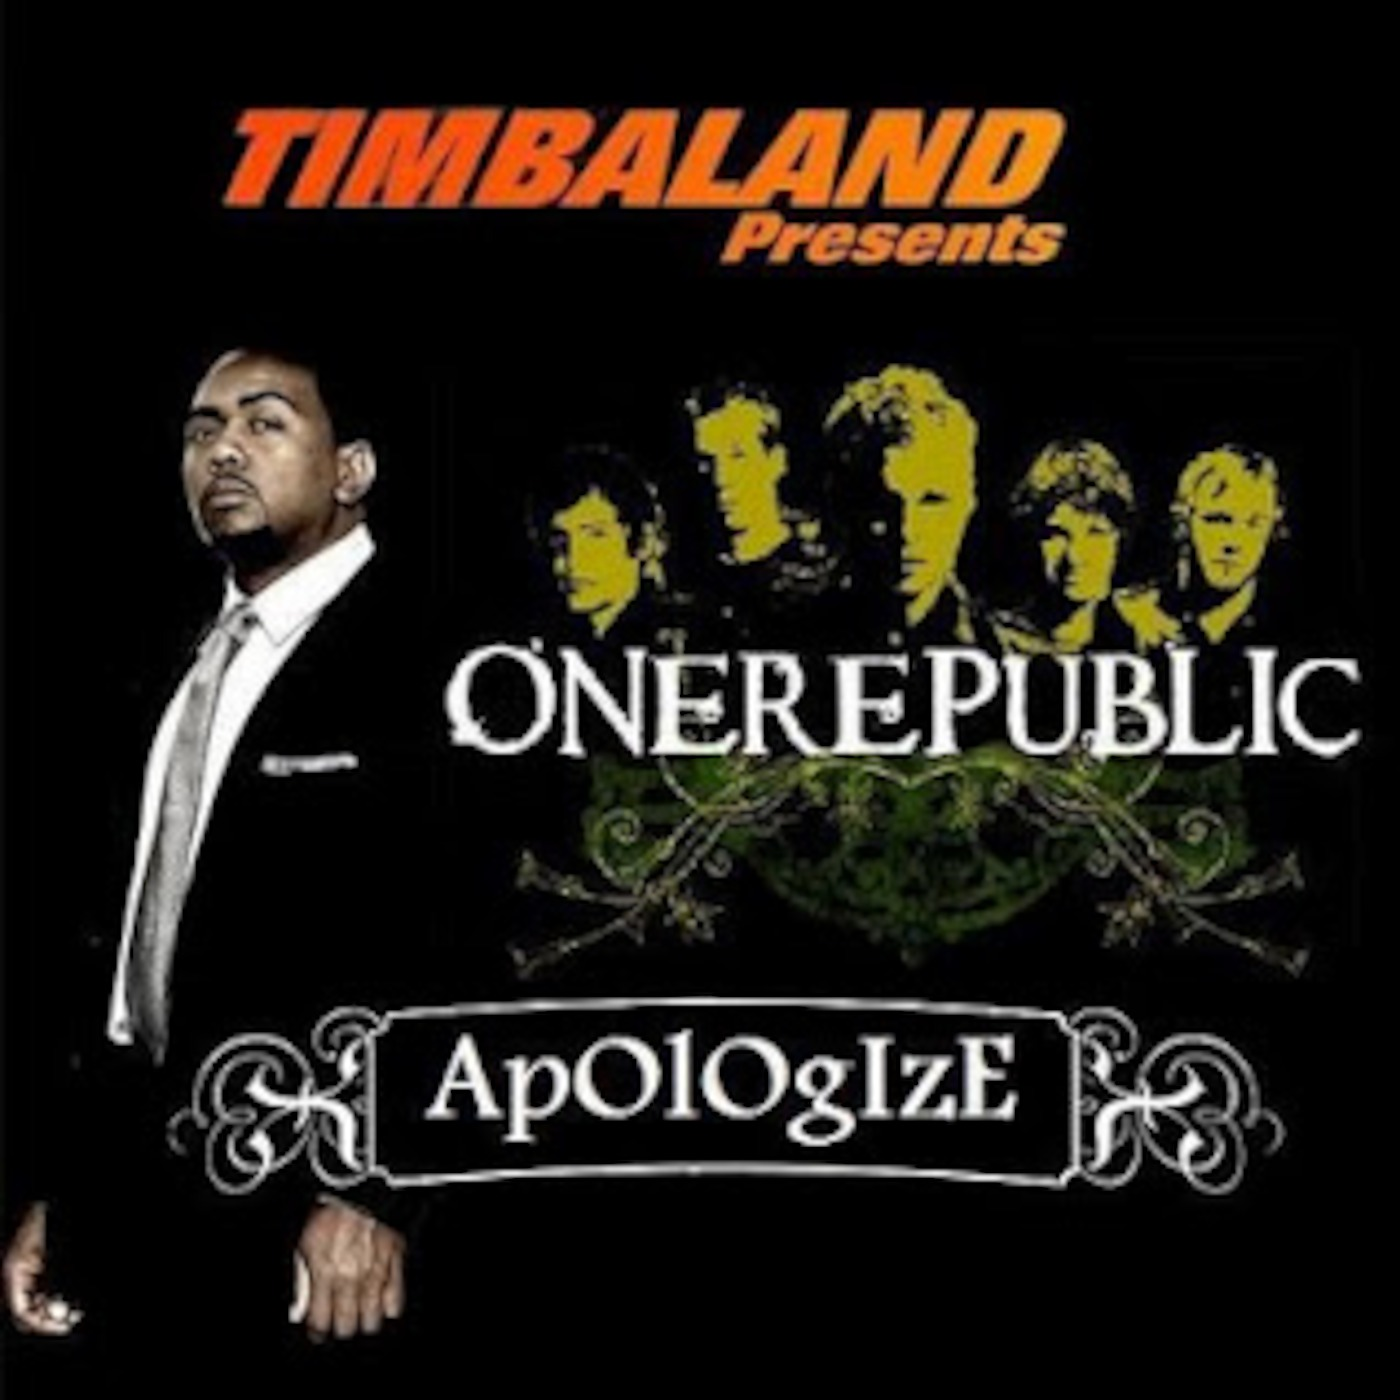 Onerepublic — apologize (feat. Timbaland) mp3 download fast and free.